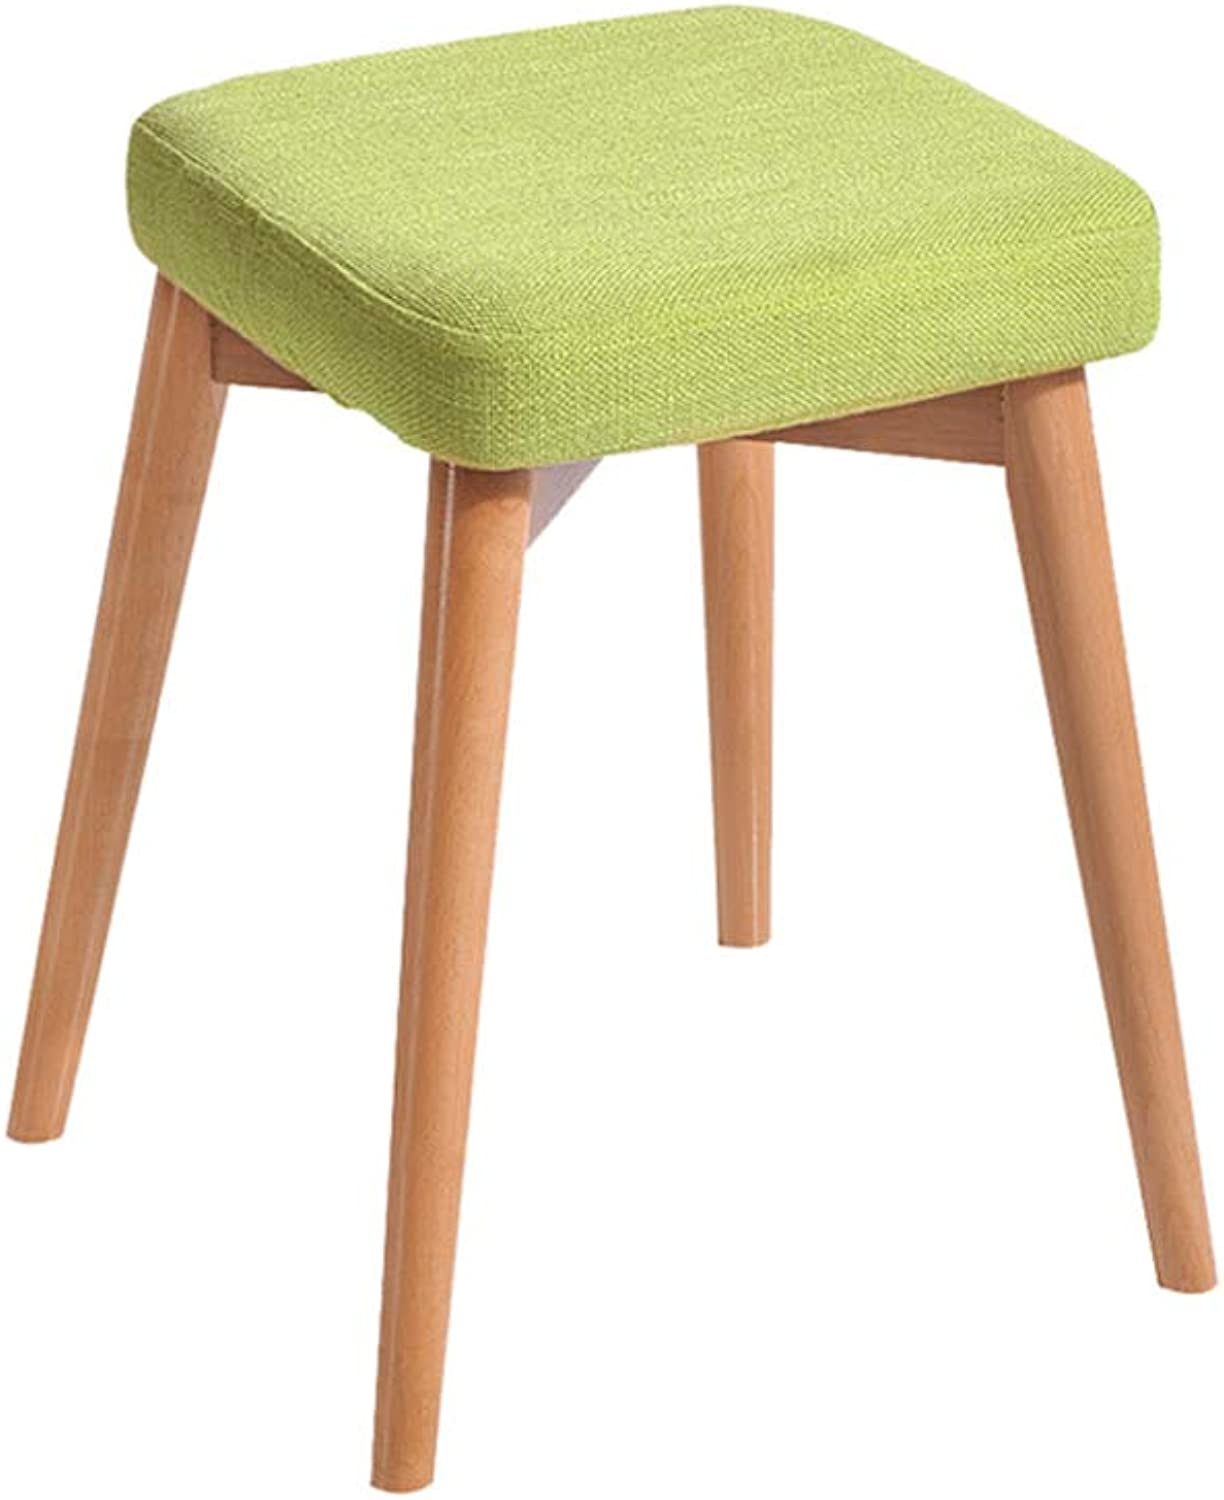 Dining Stool Change shoes Bench Square Stool Solid Wood Removable and Washable Creative Multi-Function Storage Household Table Change shoes (color   A)